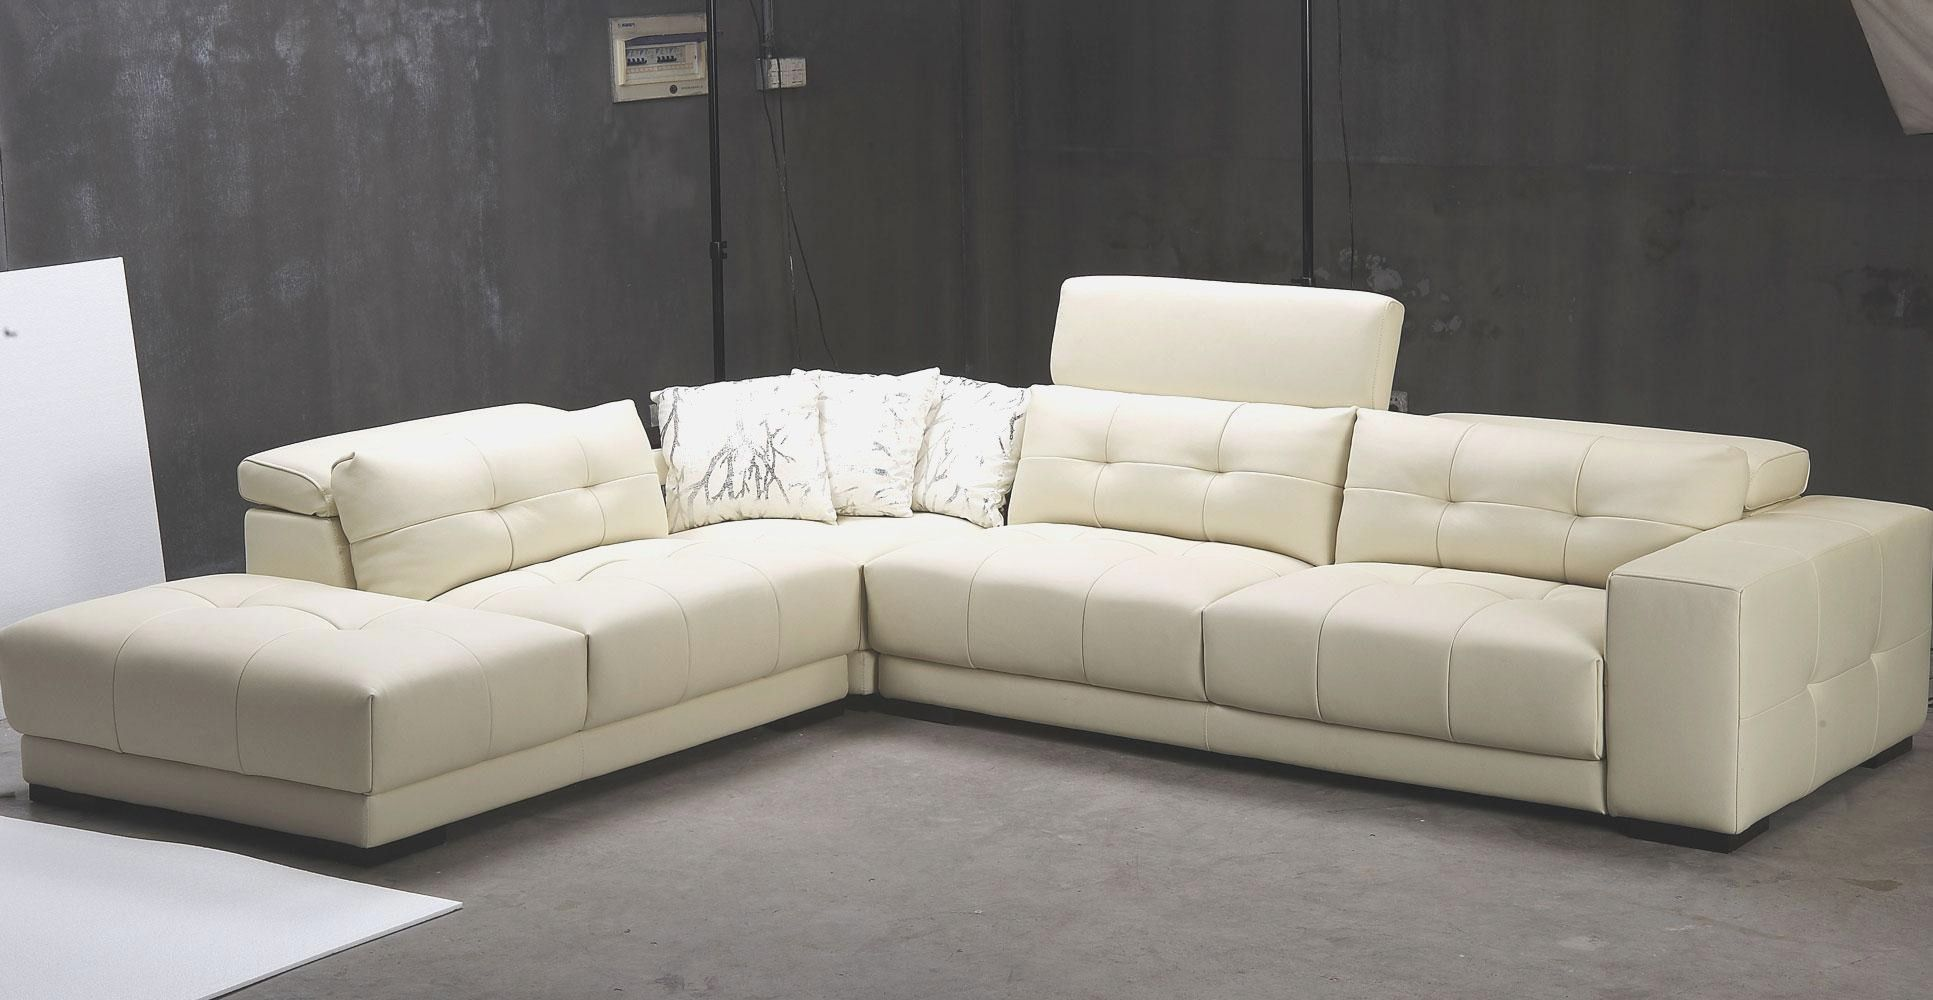 buchannan microfiber sofa review leather cleaning products singapore faux loveseats